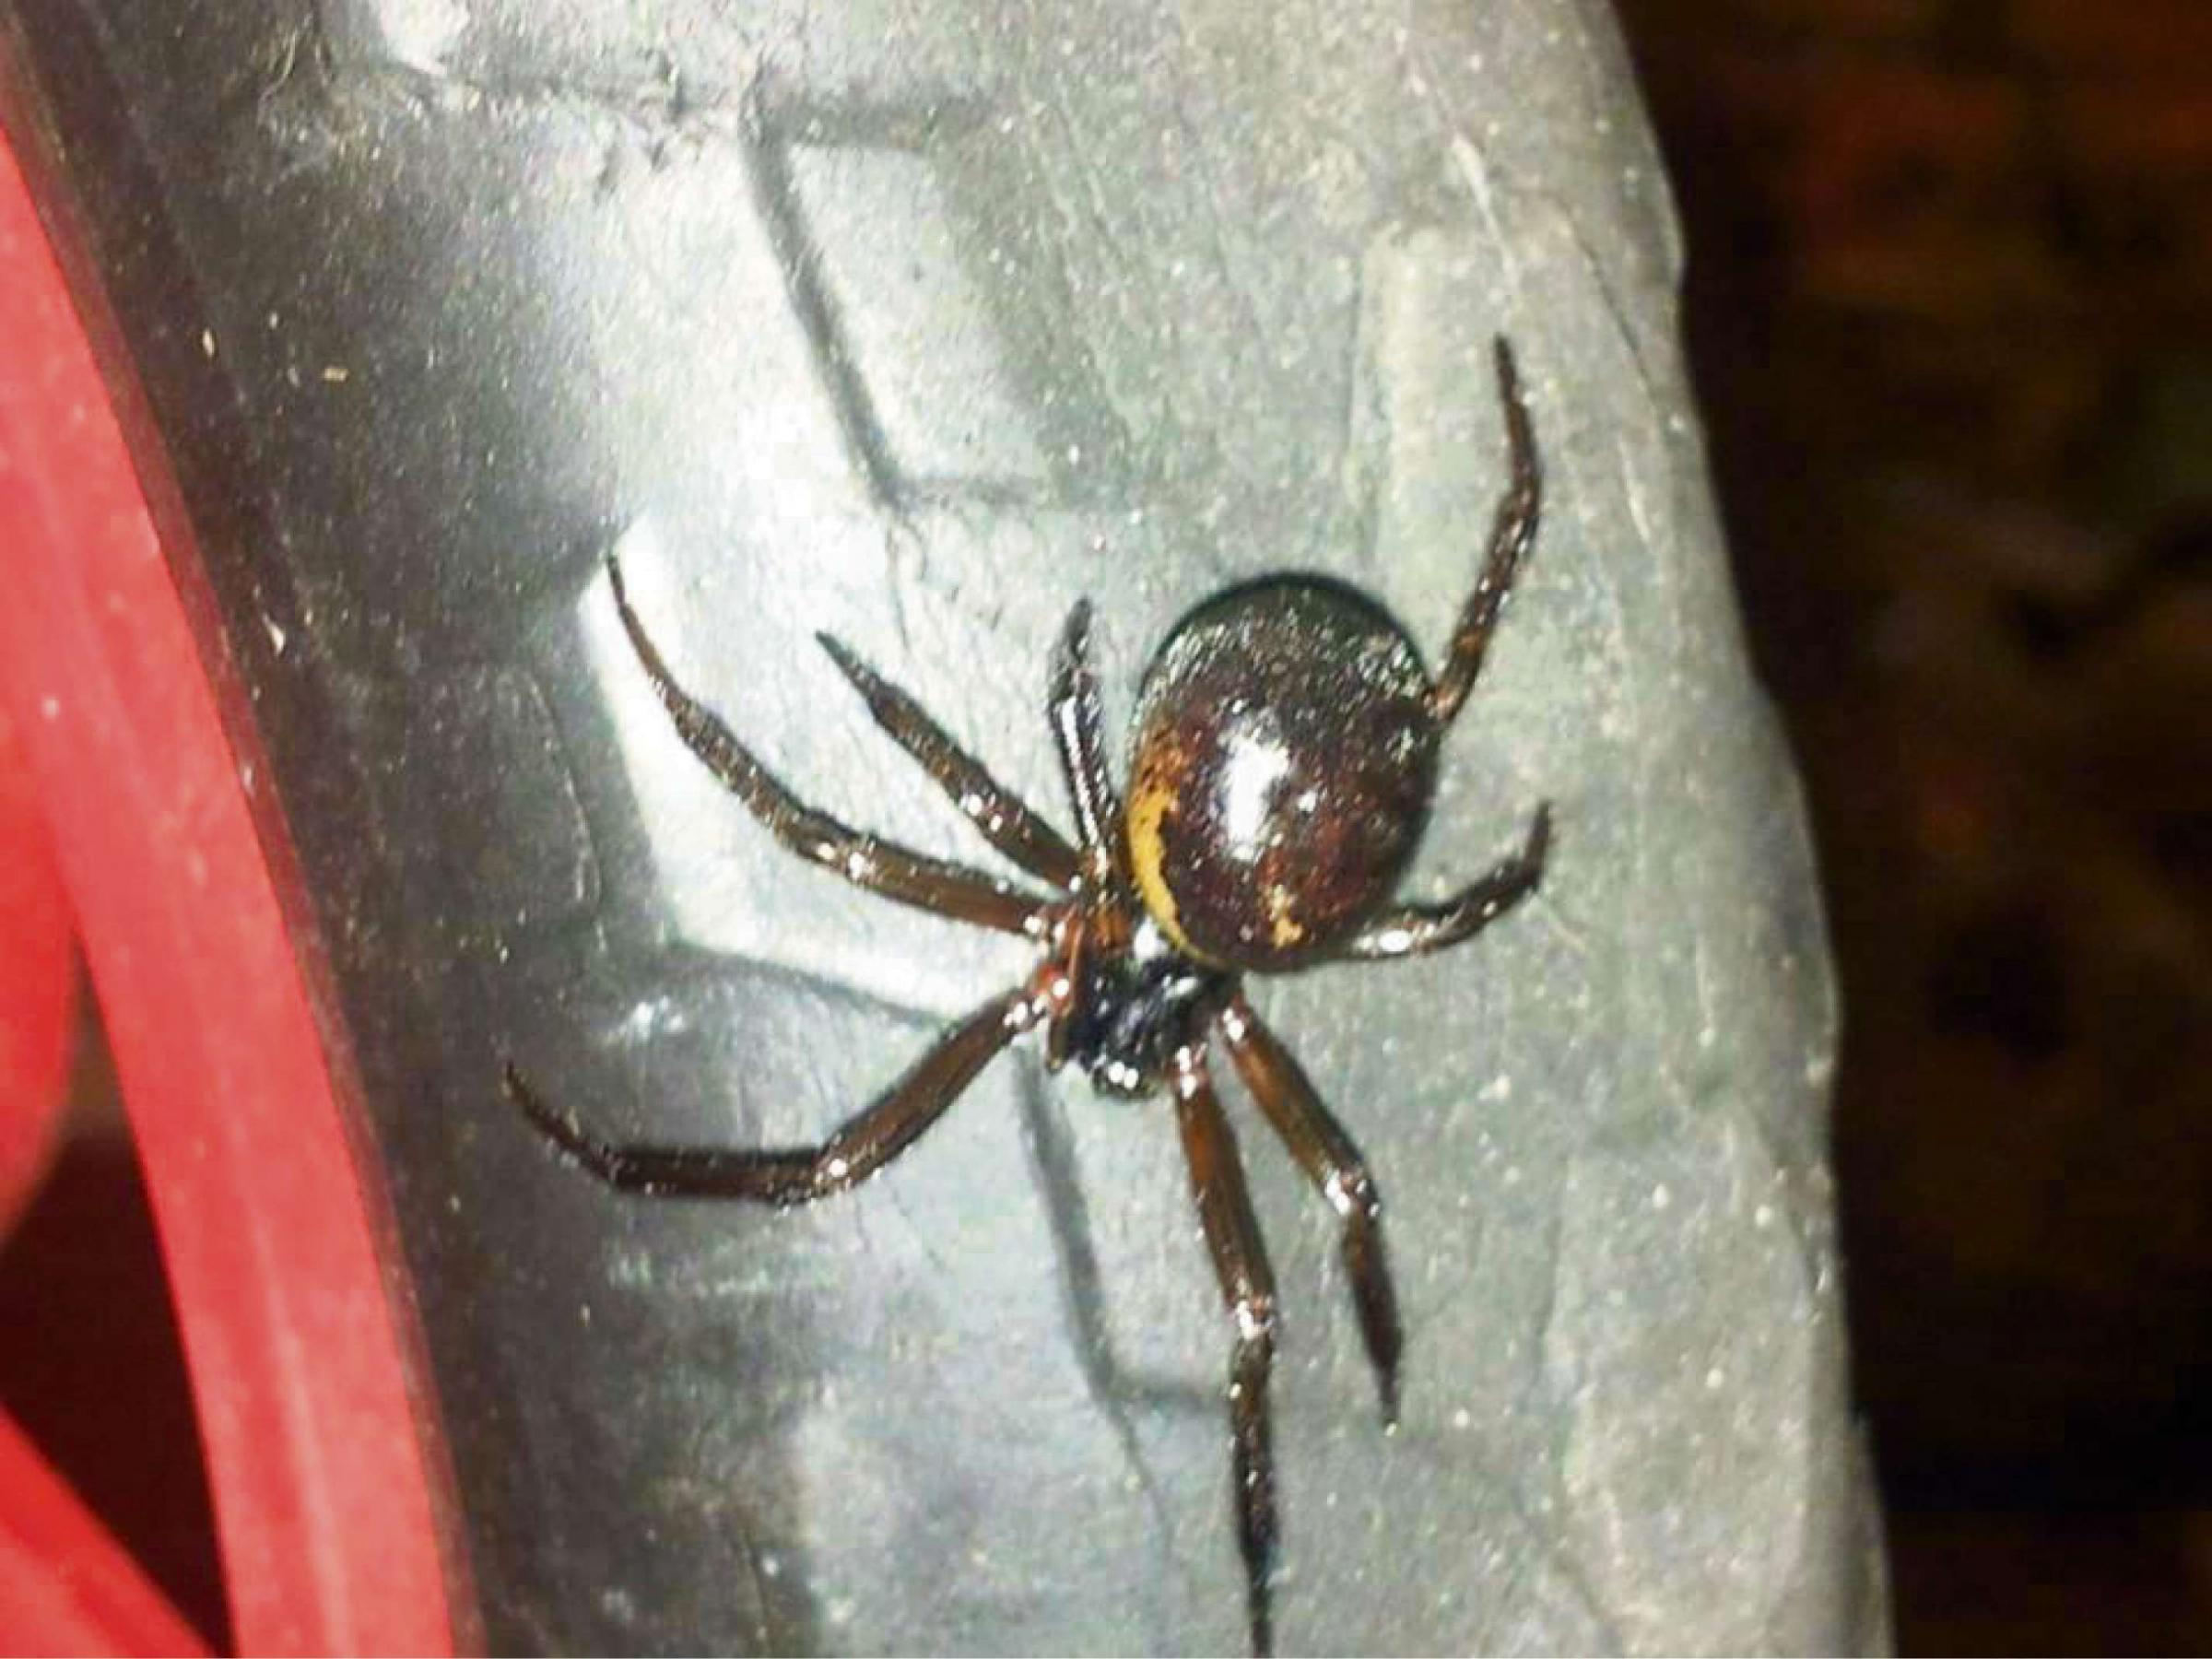 VENOMOUS: Richard took this picture before picking up the false widow spider